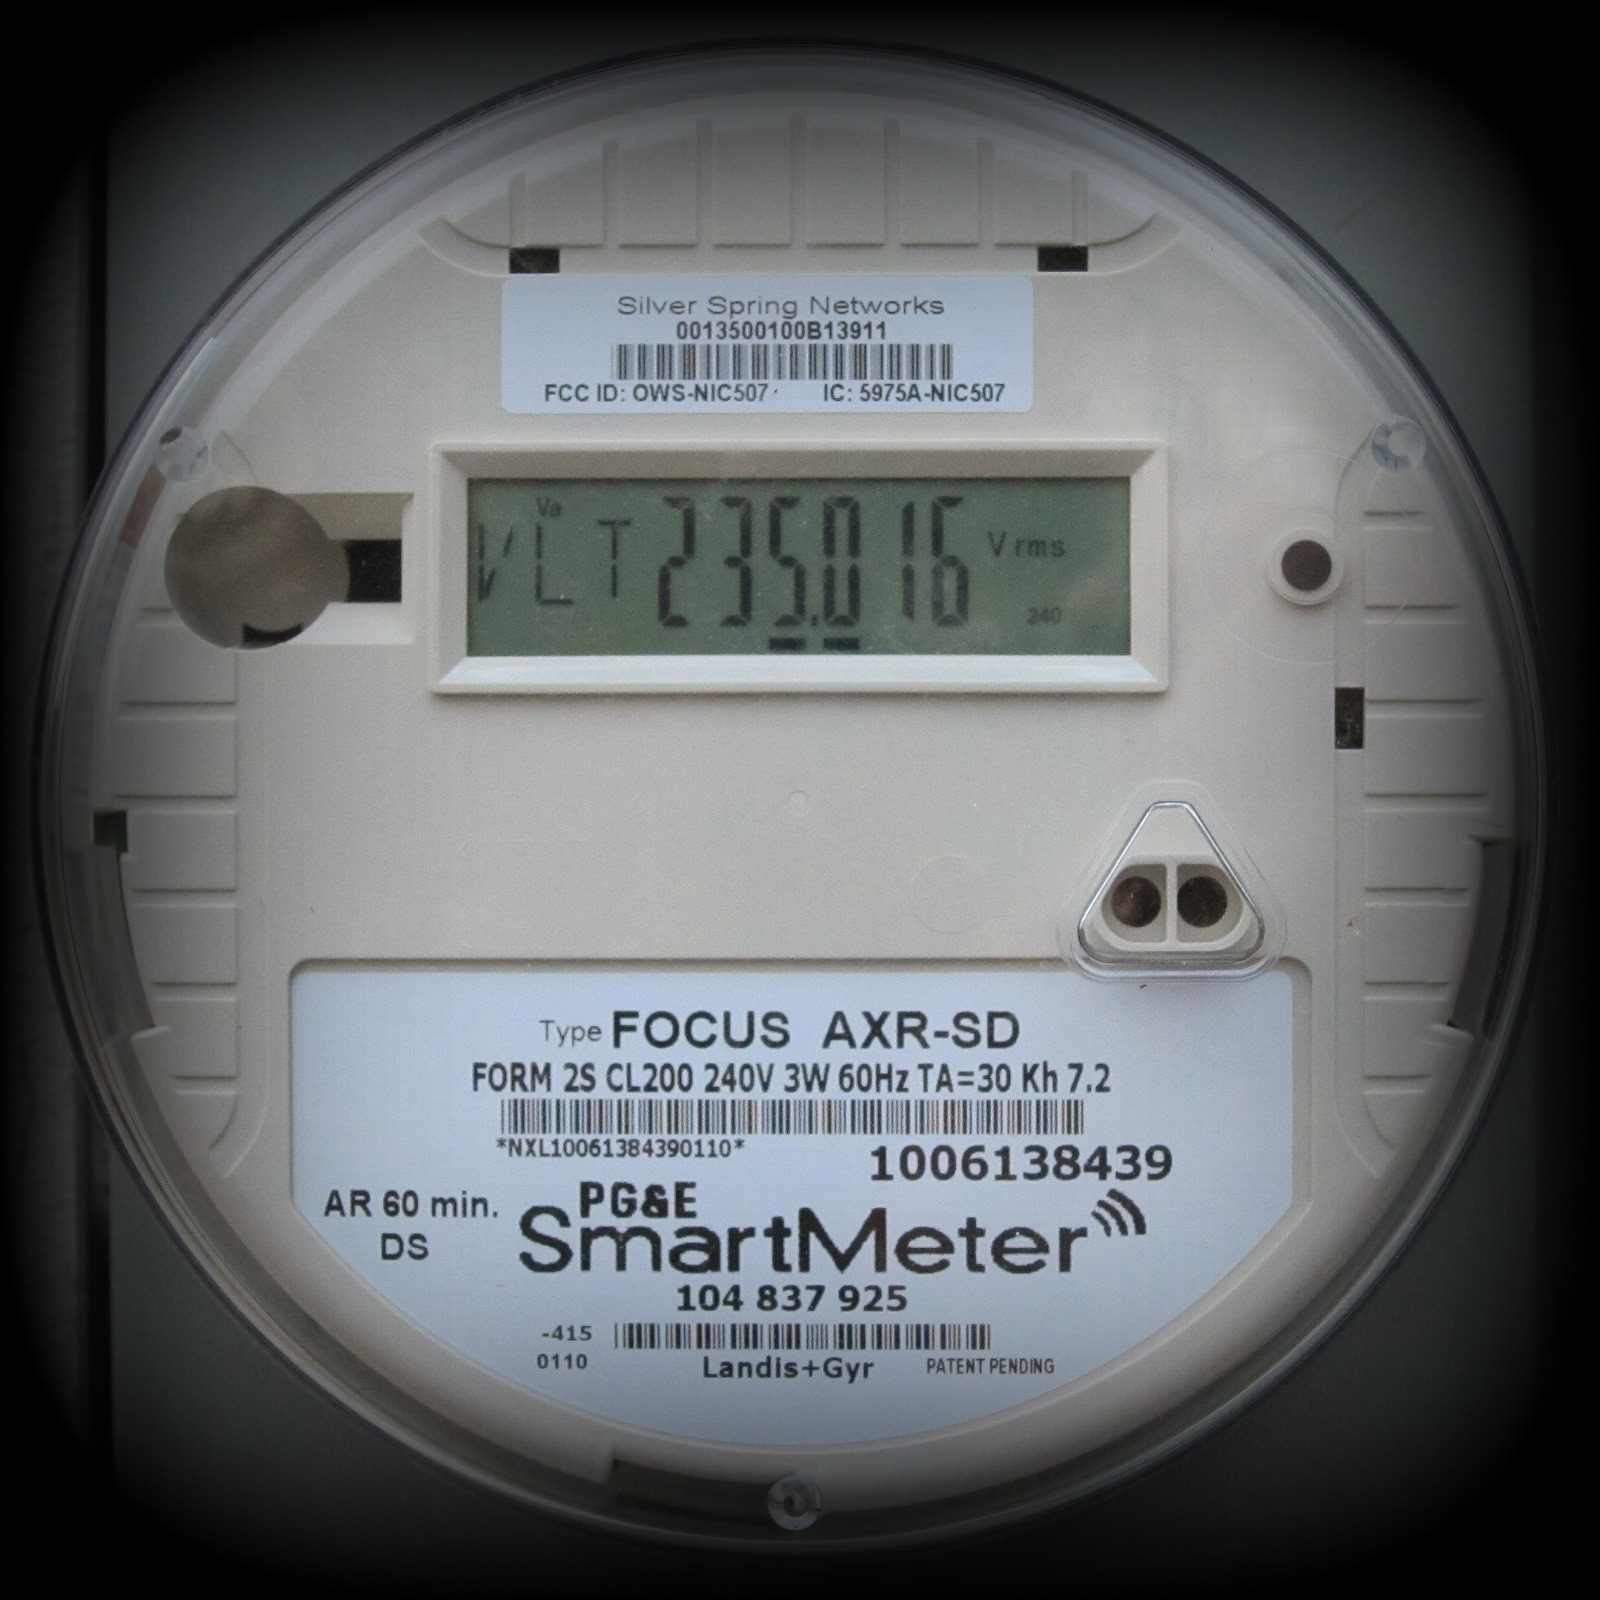 Electric Companies have changed the termenology to their customers when referring to a SMART METER, now referencing them as Analog Meters